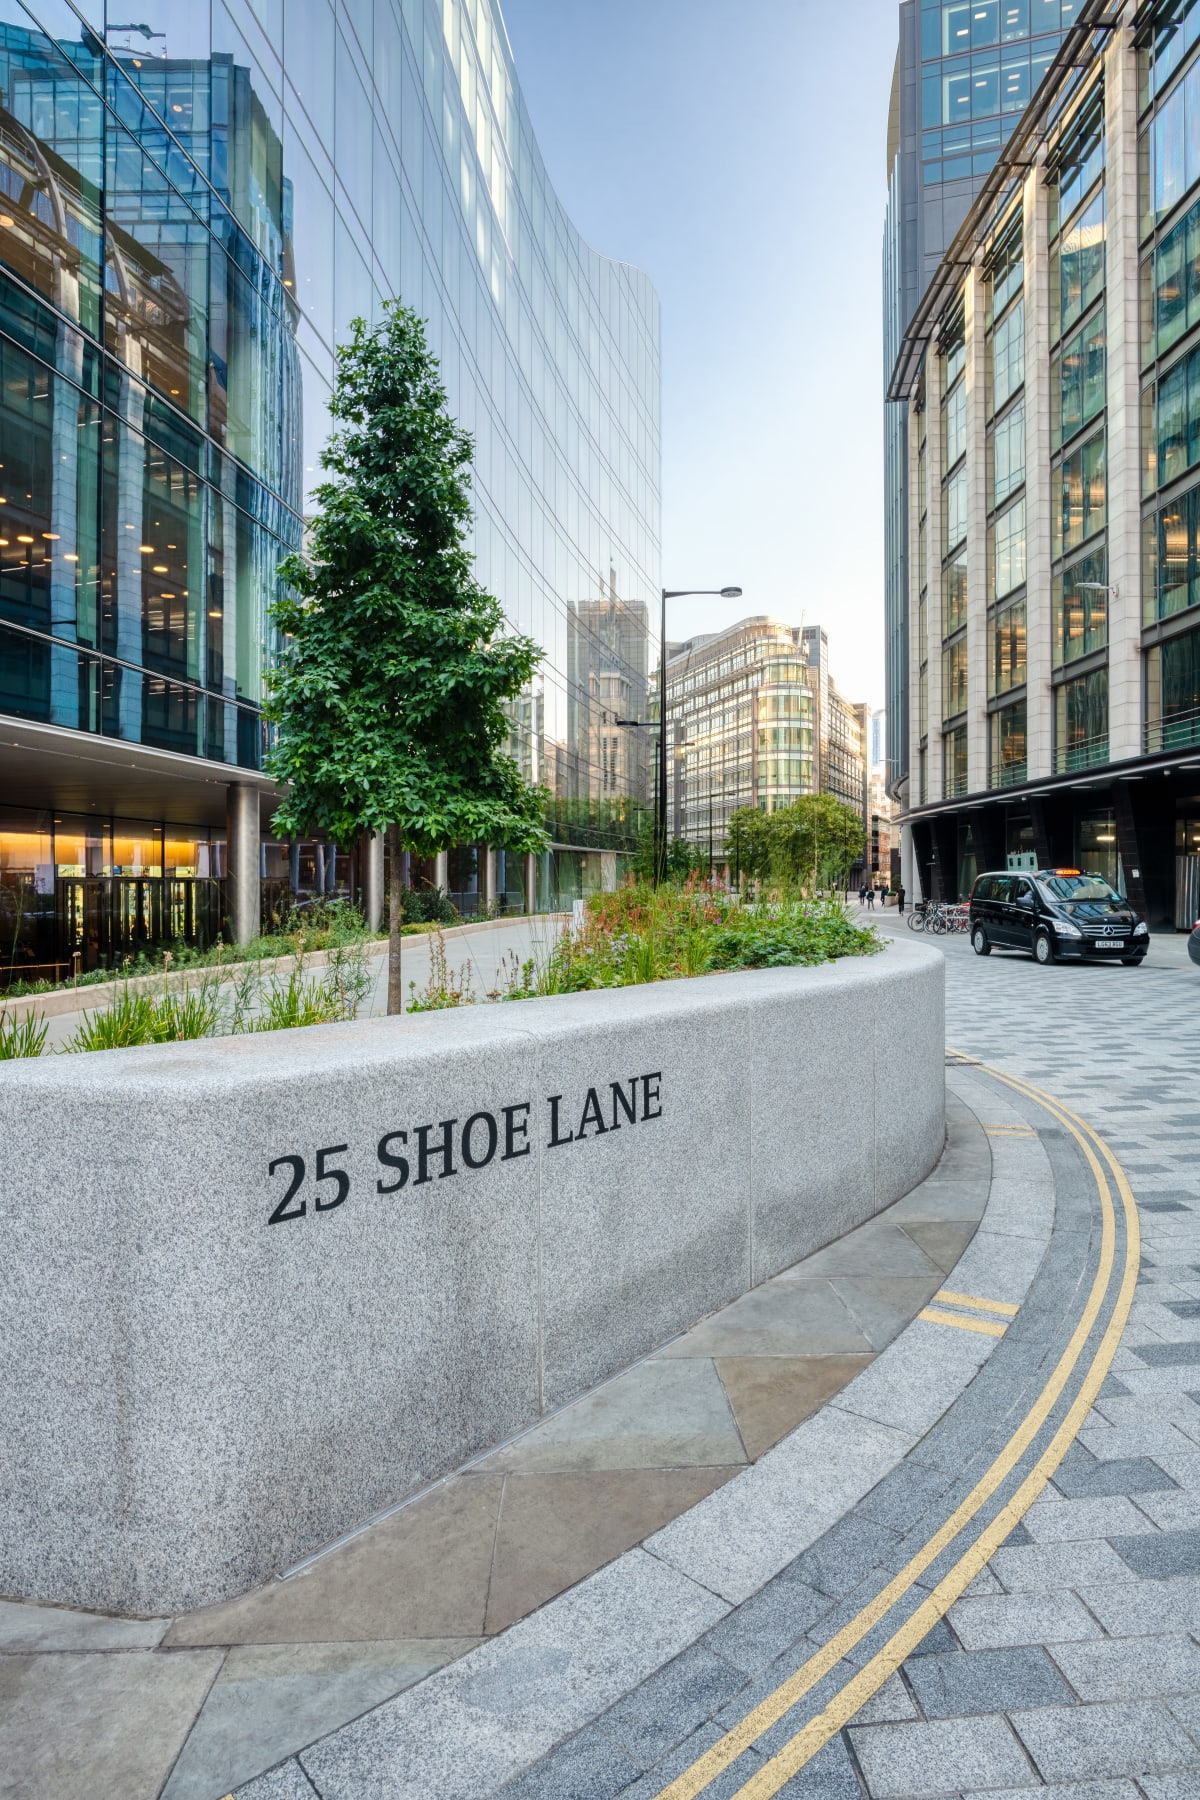 Carved and hand painted address for 25 Shoe Lane